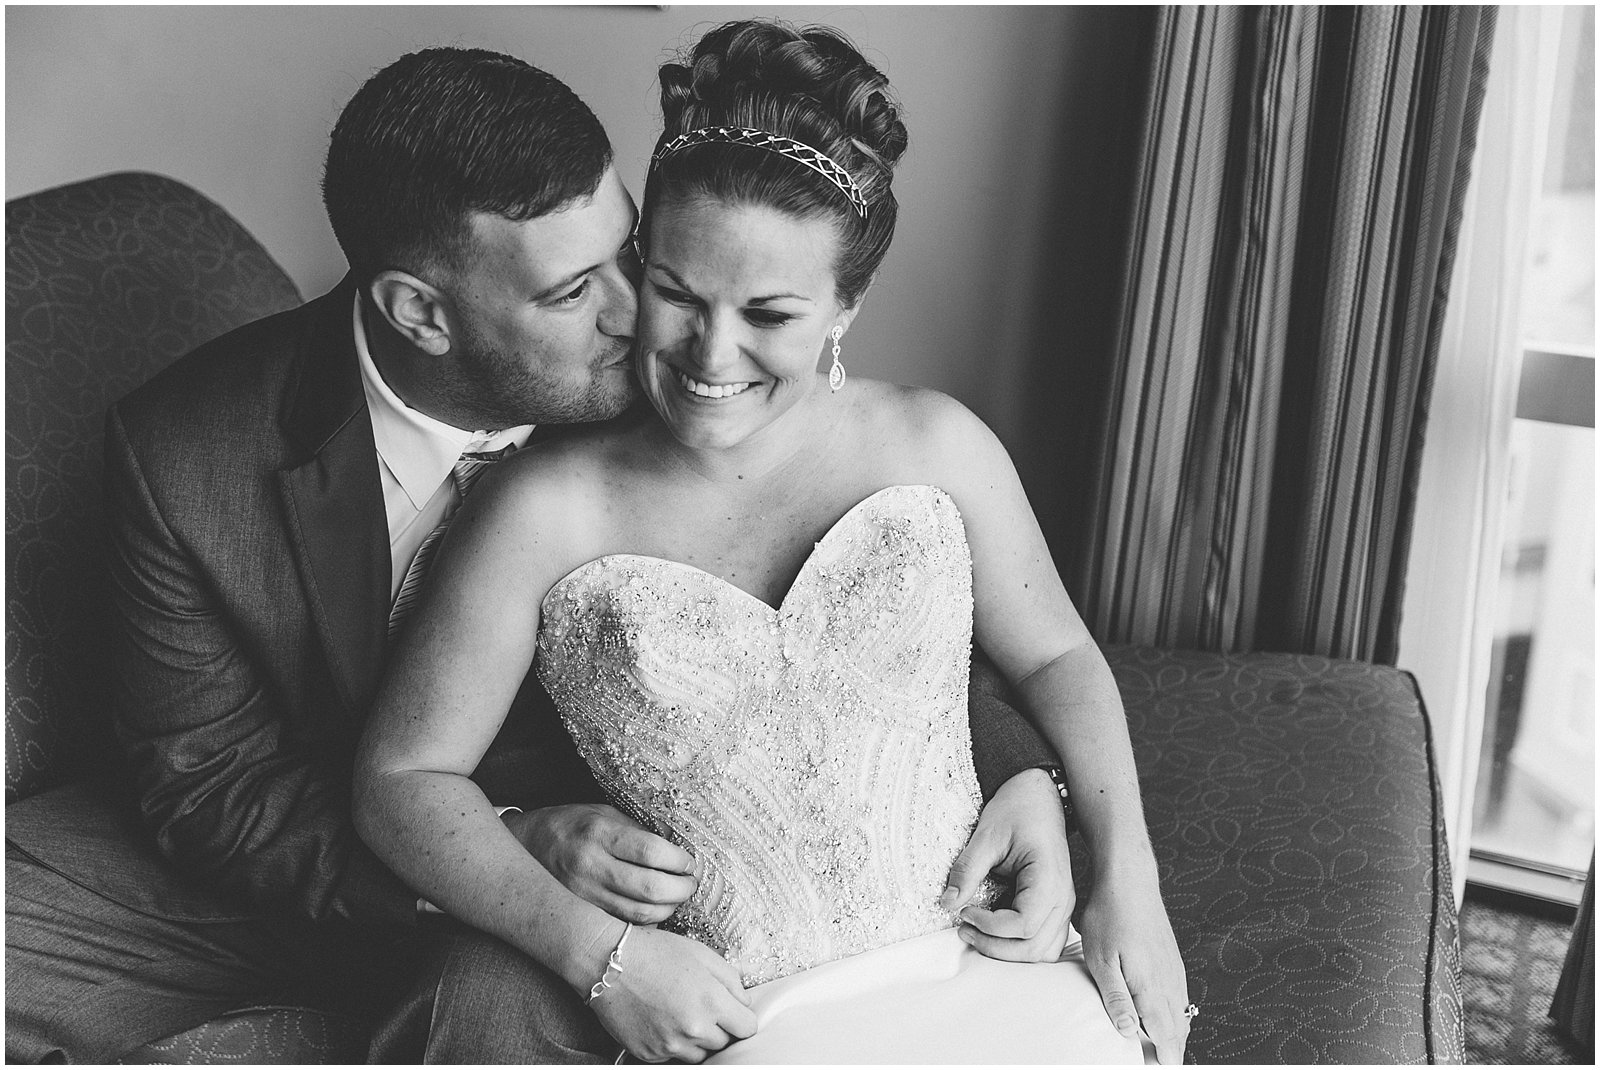 jessica_ryan_photography_wedding_virginia_beach_virginia_wedding_photographer_candid_wedding_photography_lifestyle_photojournalistic_real_moments_0103